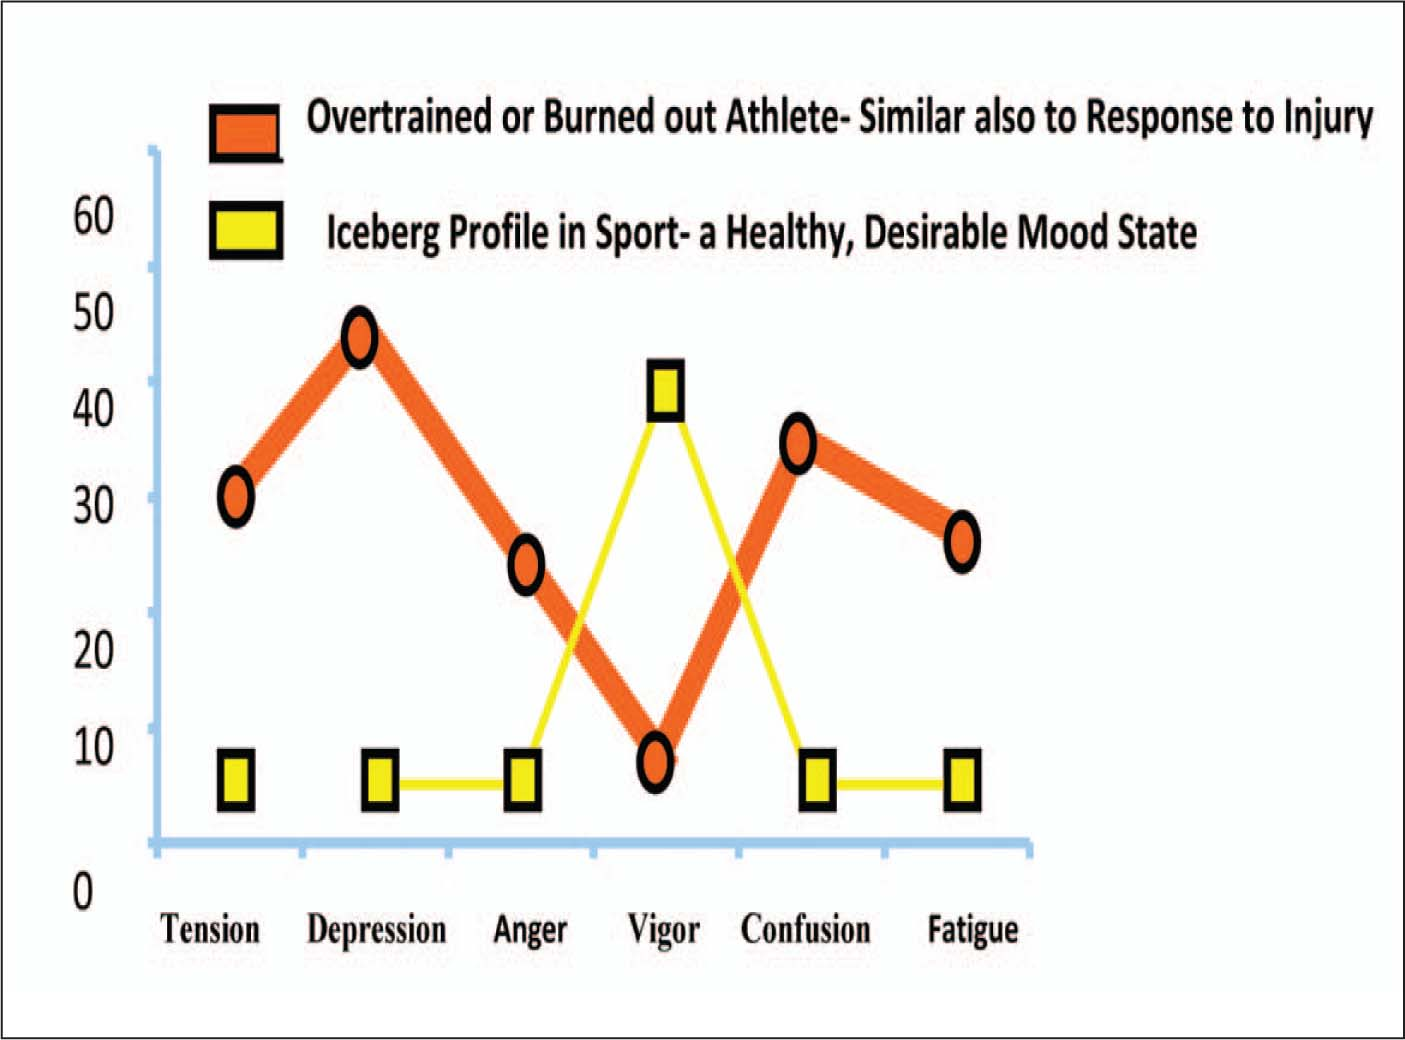 Profile of Mood States (POMS) Graphed to Depict the Profile of an Injured Athletes Contrasted to the Iceberg Profile in Sport.